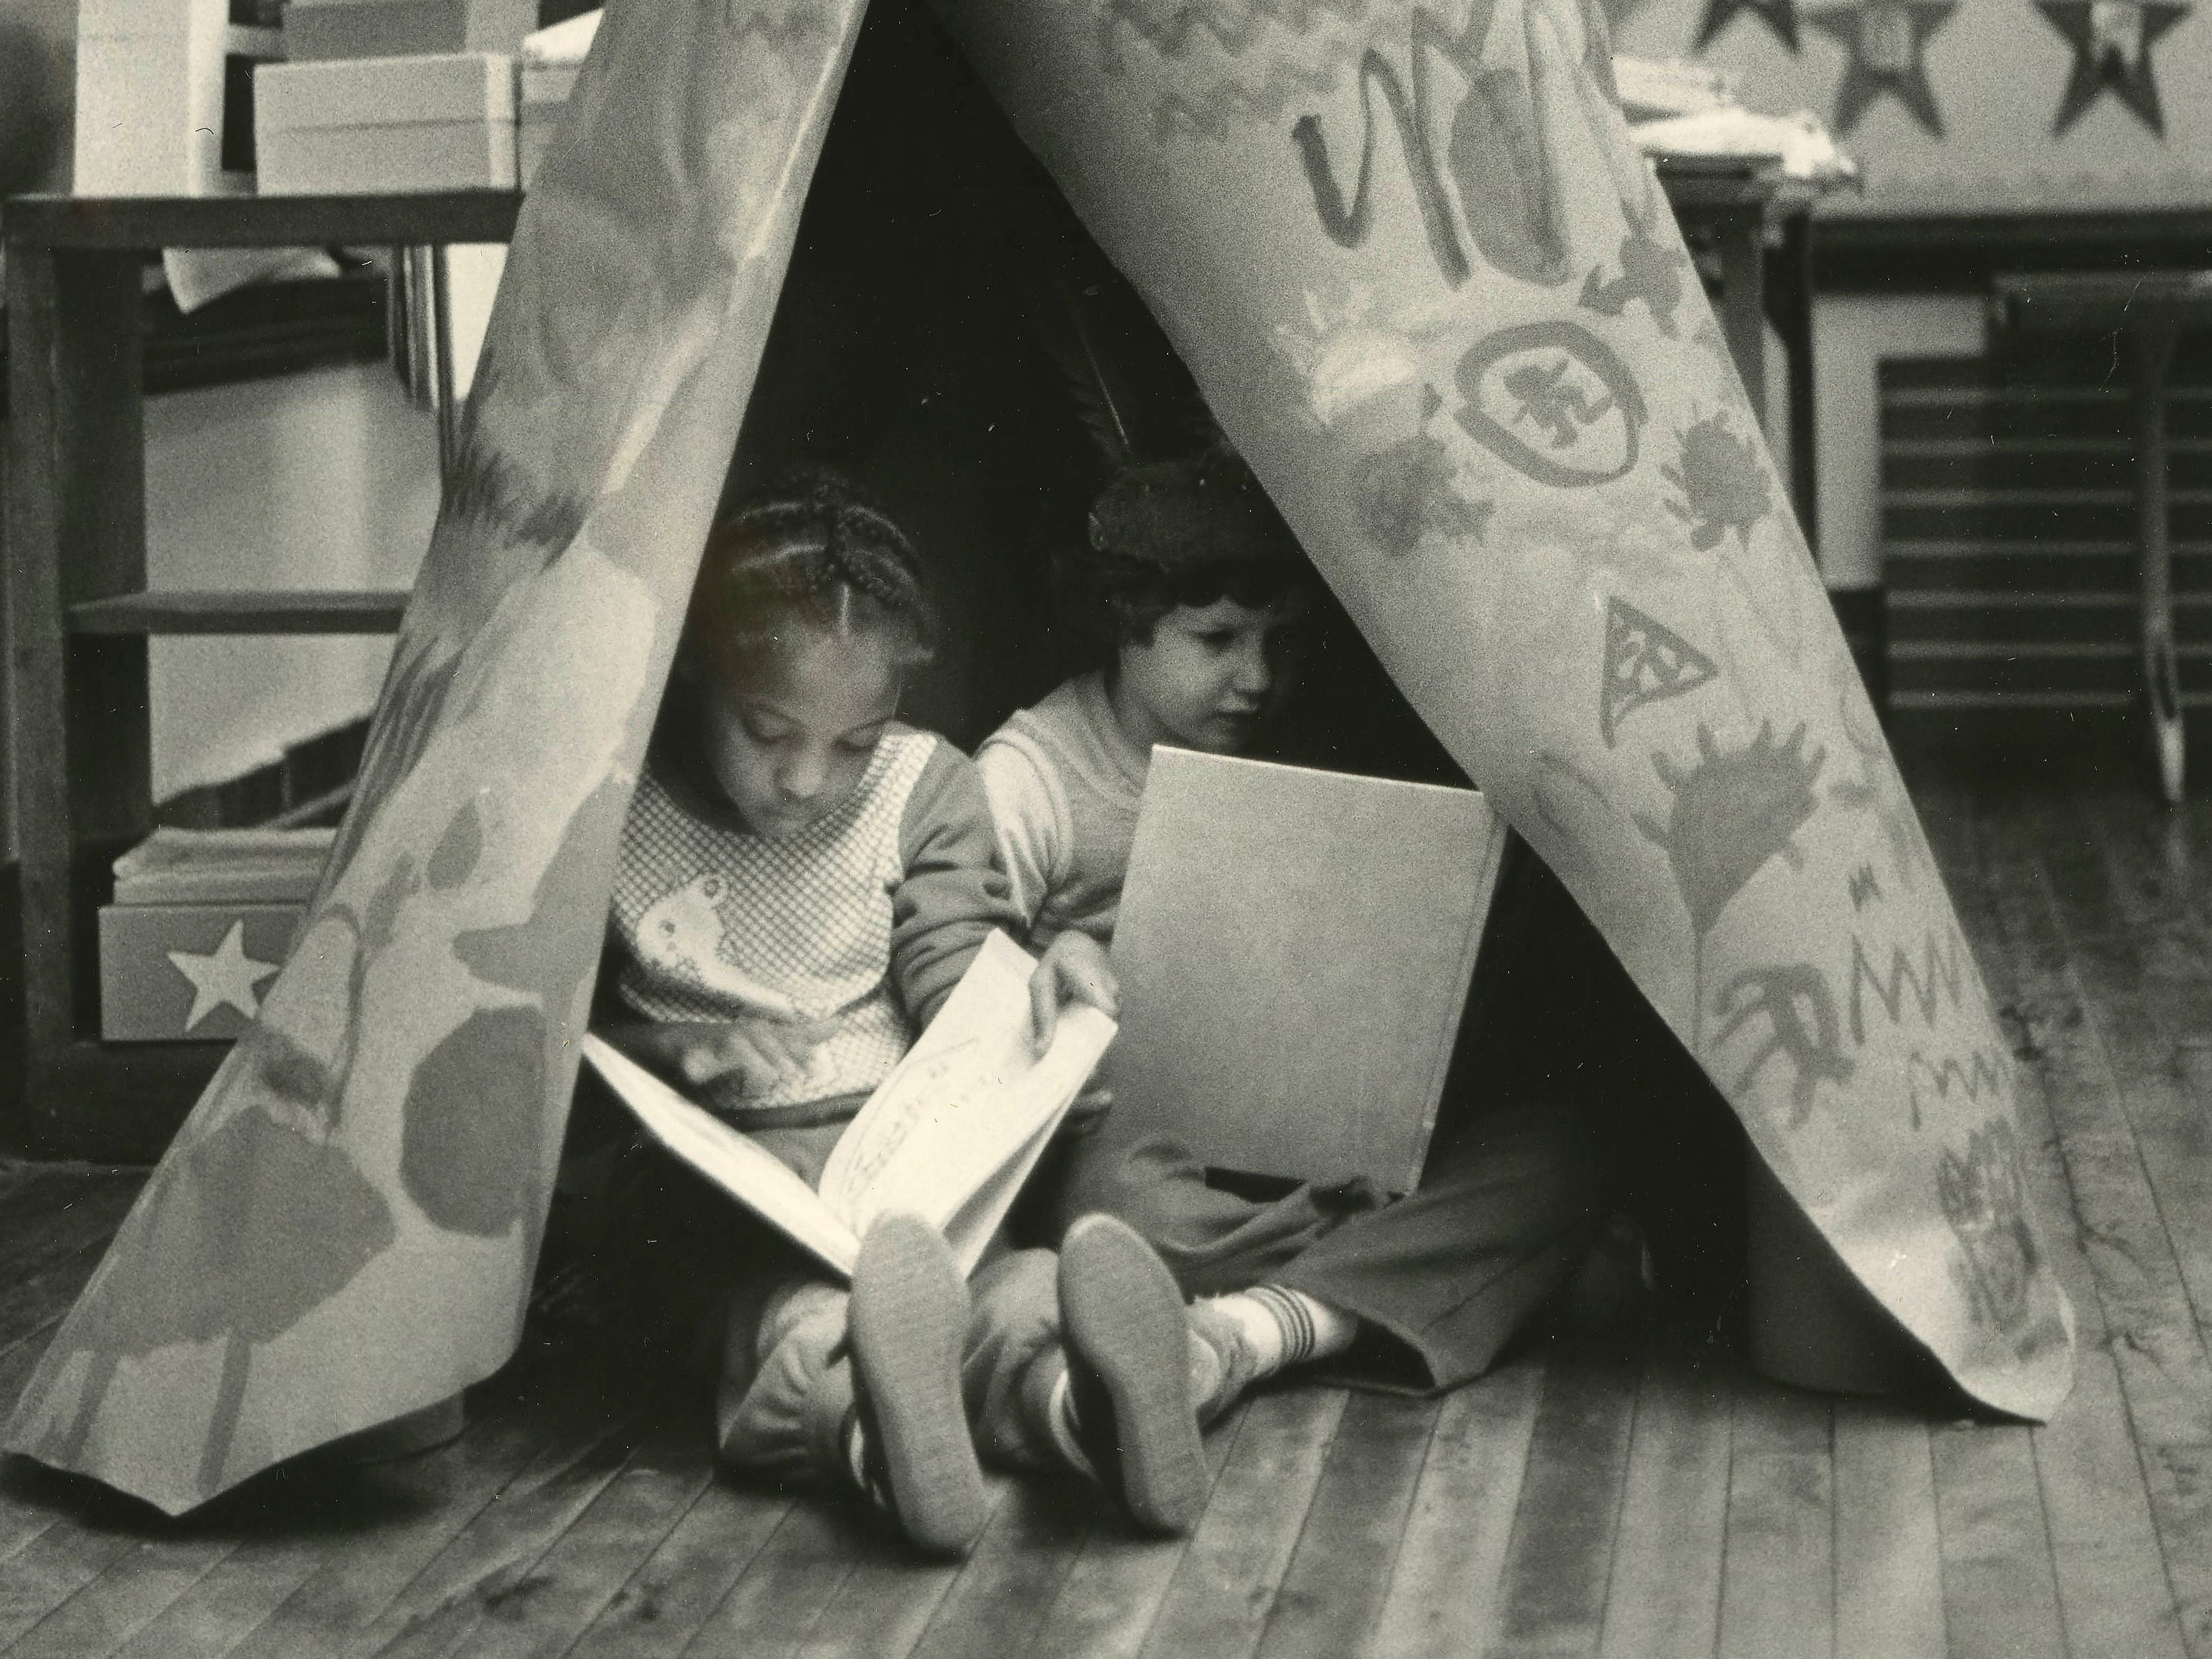 Kirstin King and Adam Letterman reading in a tepee constructed in their school room during studies about Thanksgiving at Boyd School in 1985.